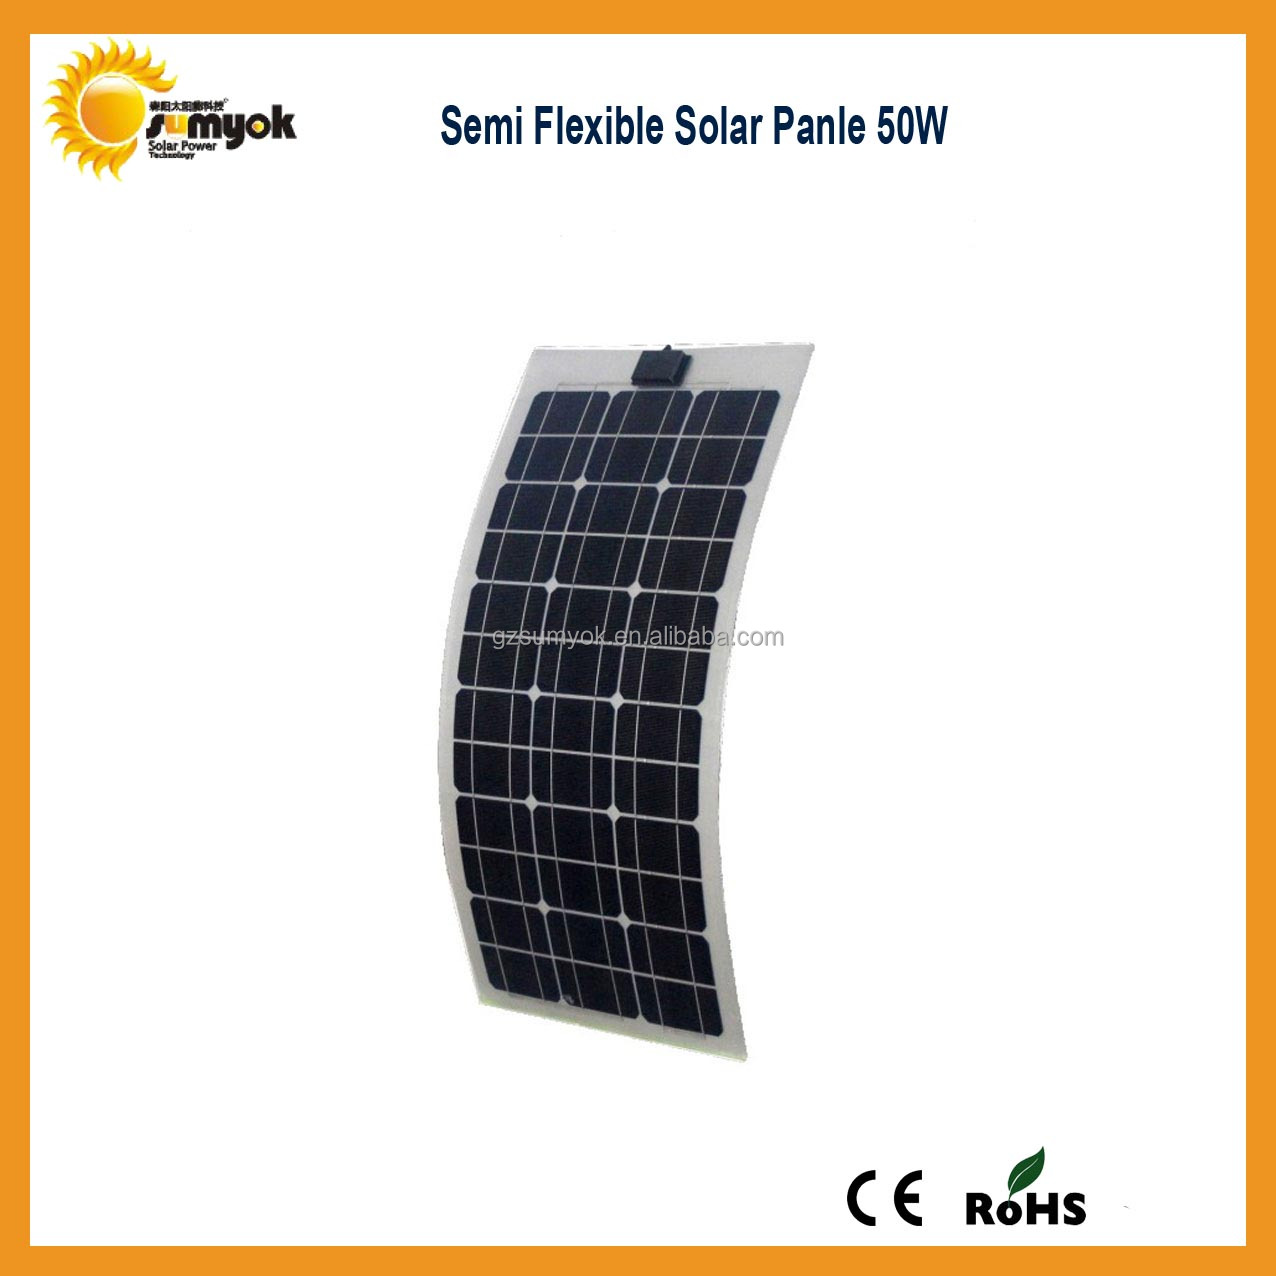 2014 Hot sales cheap price 50W flexible solar panel/solar module/pv module